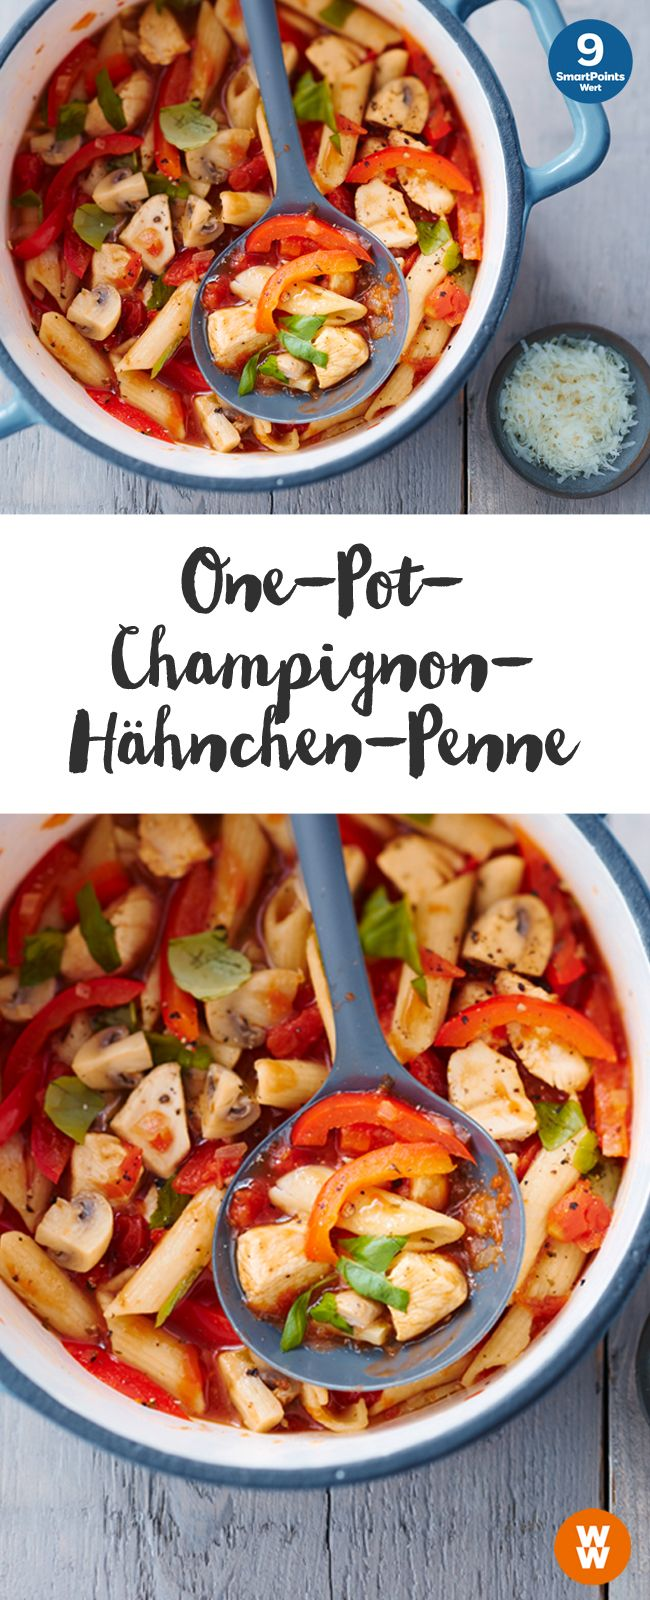 One-Pot-Champignon-Hähnchen-Penne | Weight Watchers (Camping Food Recipes)